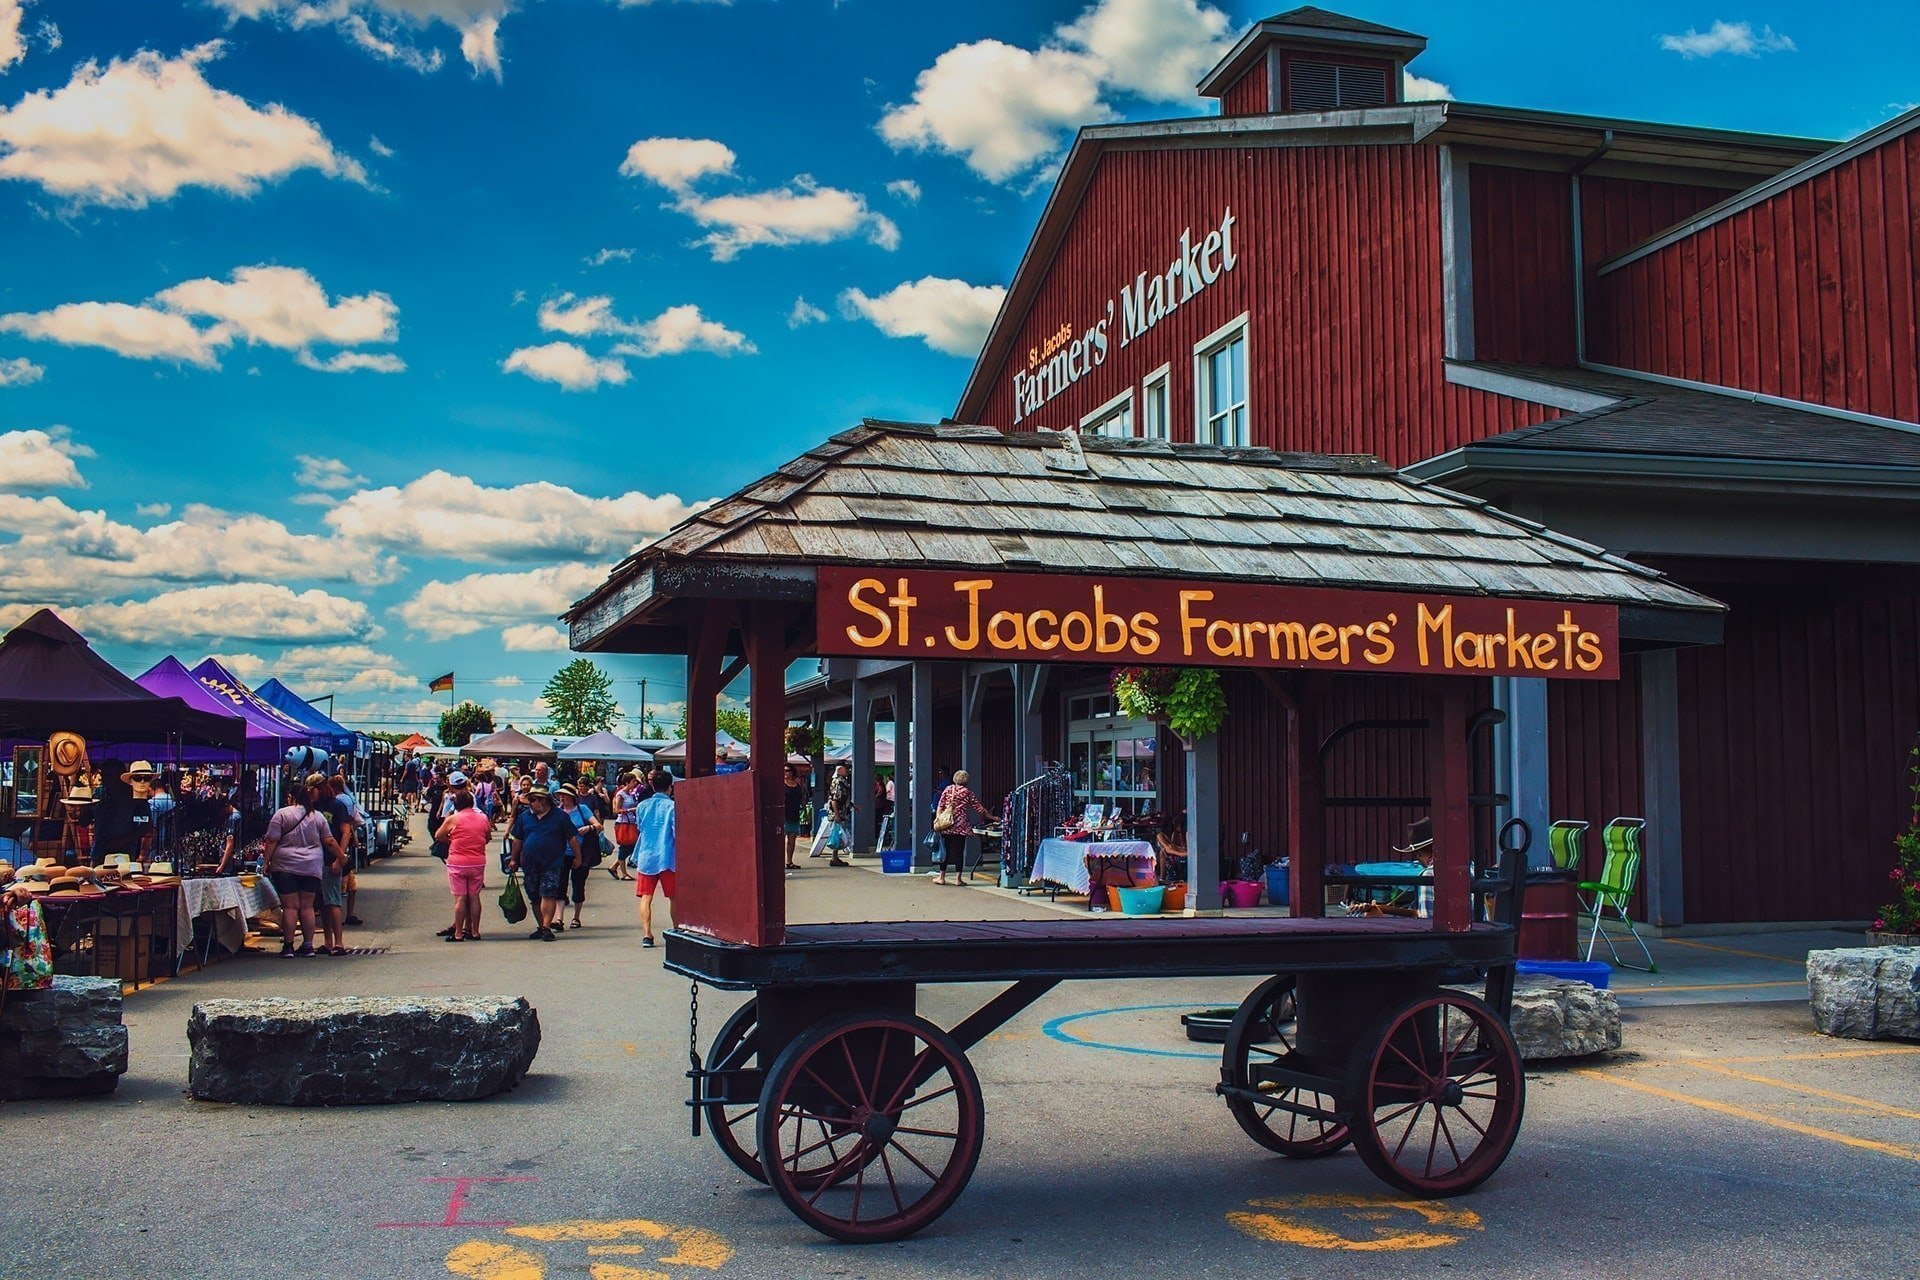 World famous St. Jacobs Farmers Market in St. Jacobs Ontario